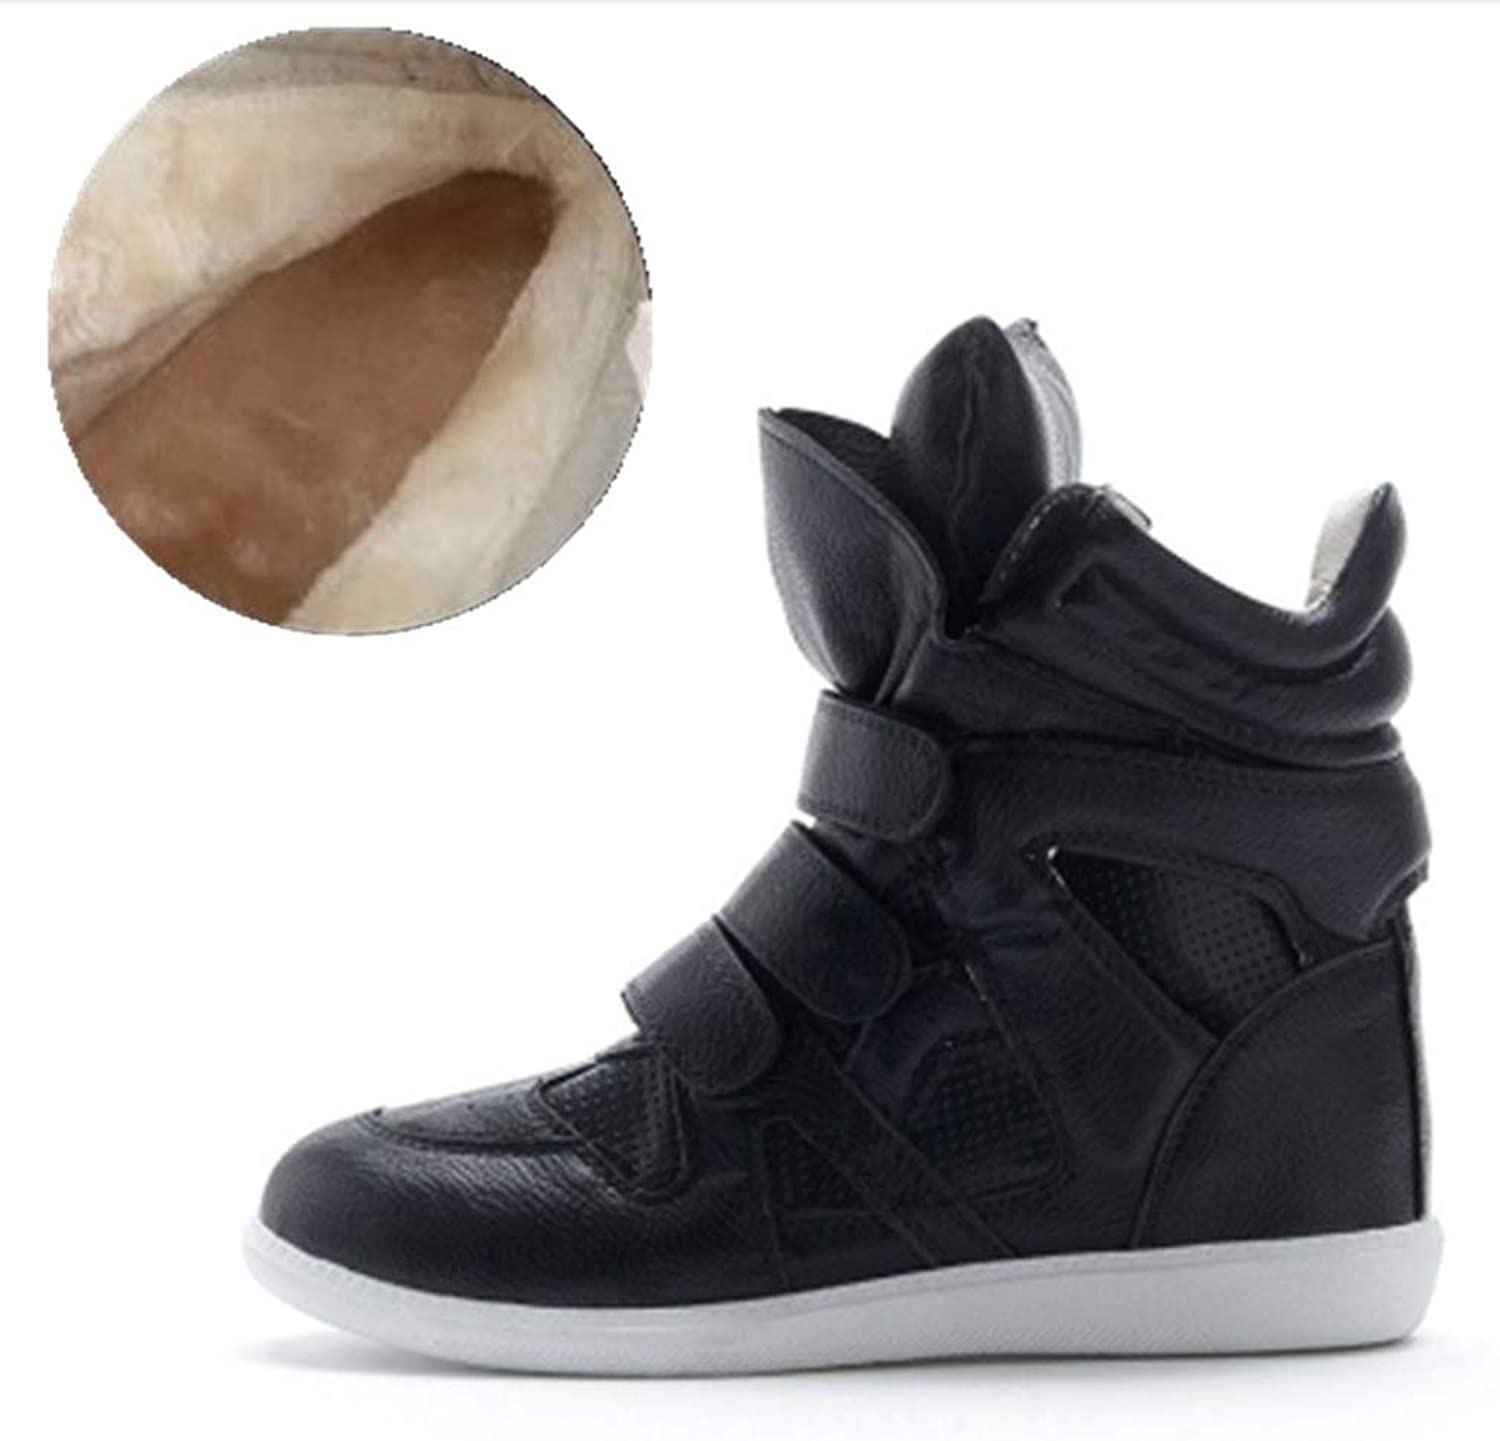 Women Casual Wedge Sneaker Fashion Hidden Wedges Canvas Ankle Boots Outdoor Plush High Top Walking shoes